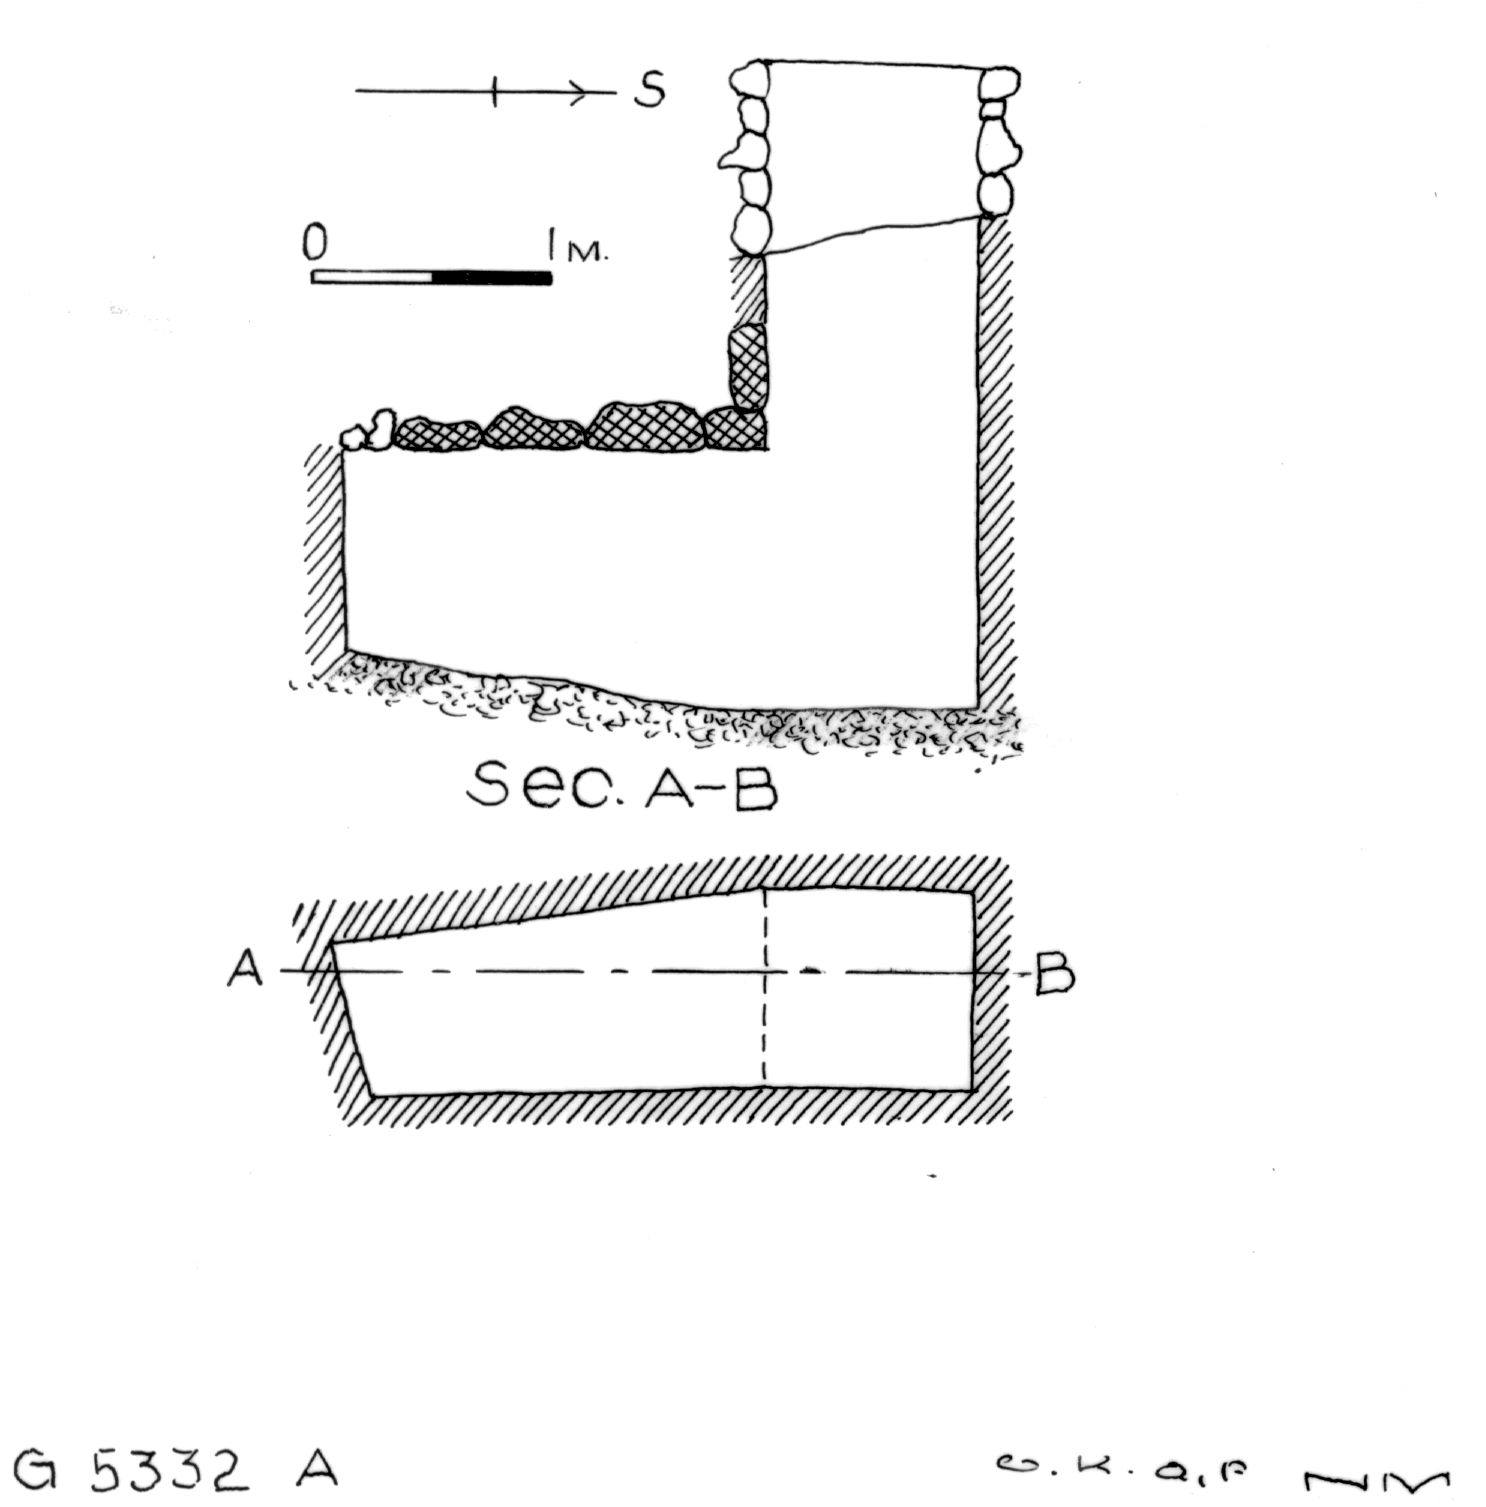 Maps and plans: G 5332, Shaft A (S 806b)